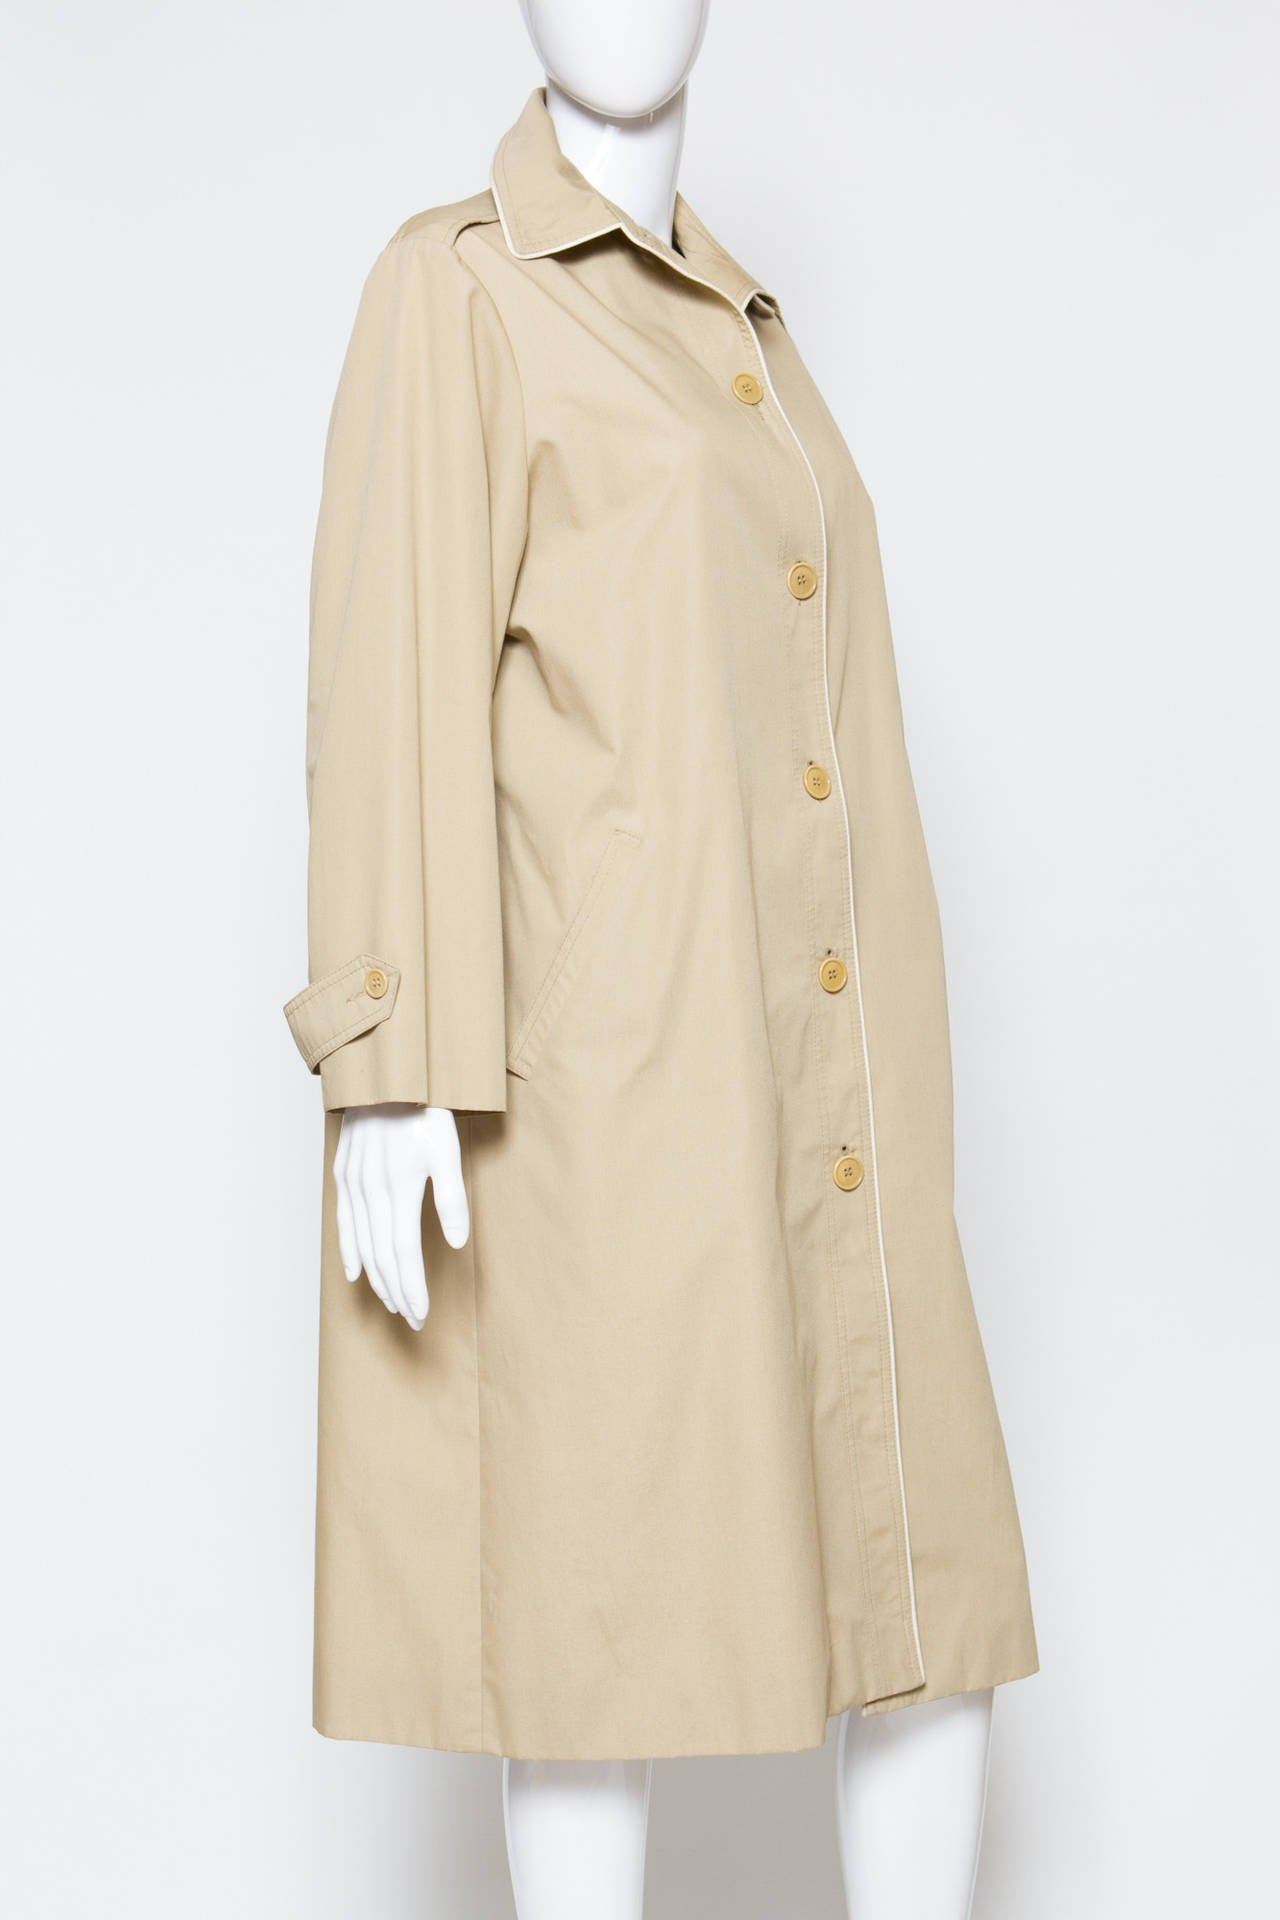 1975s Celine Camel Trench-Coat 3